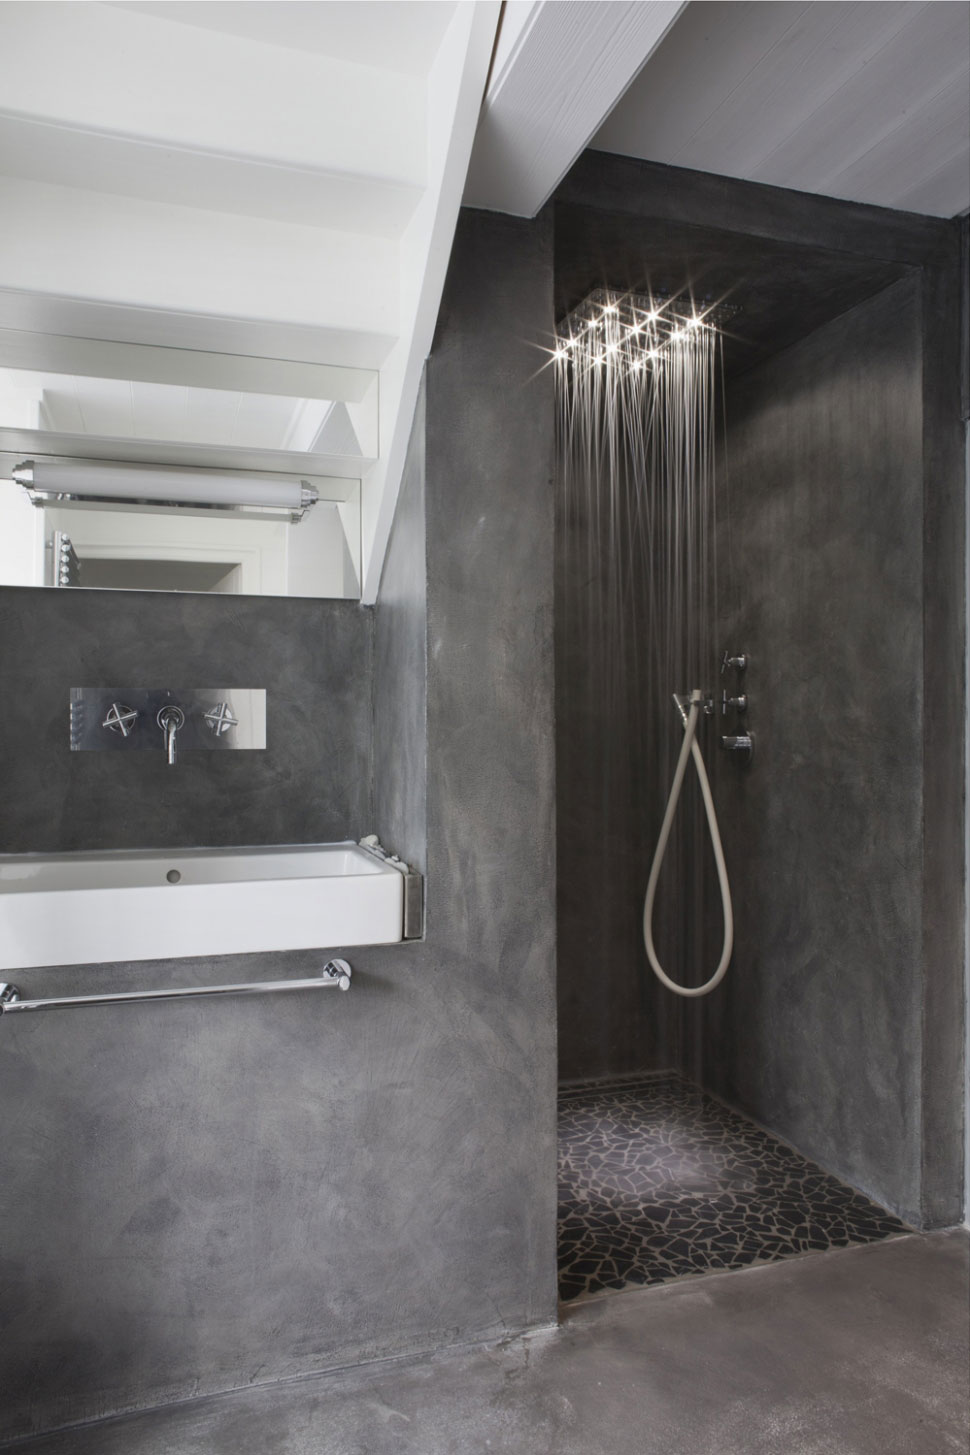 Cool Shower Head Invades Every Bathroom With Style And